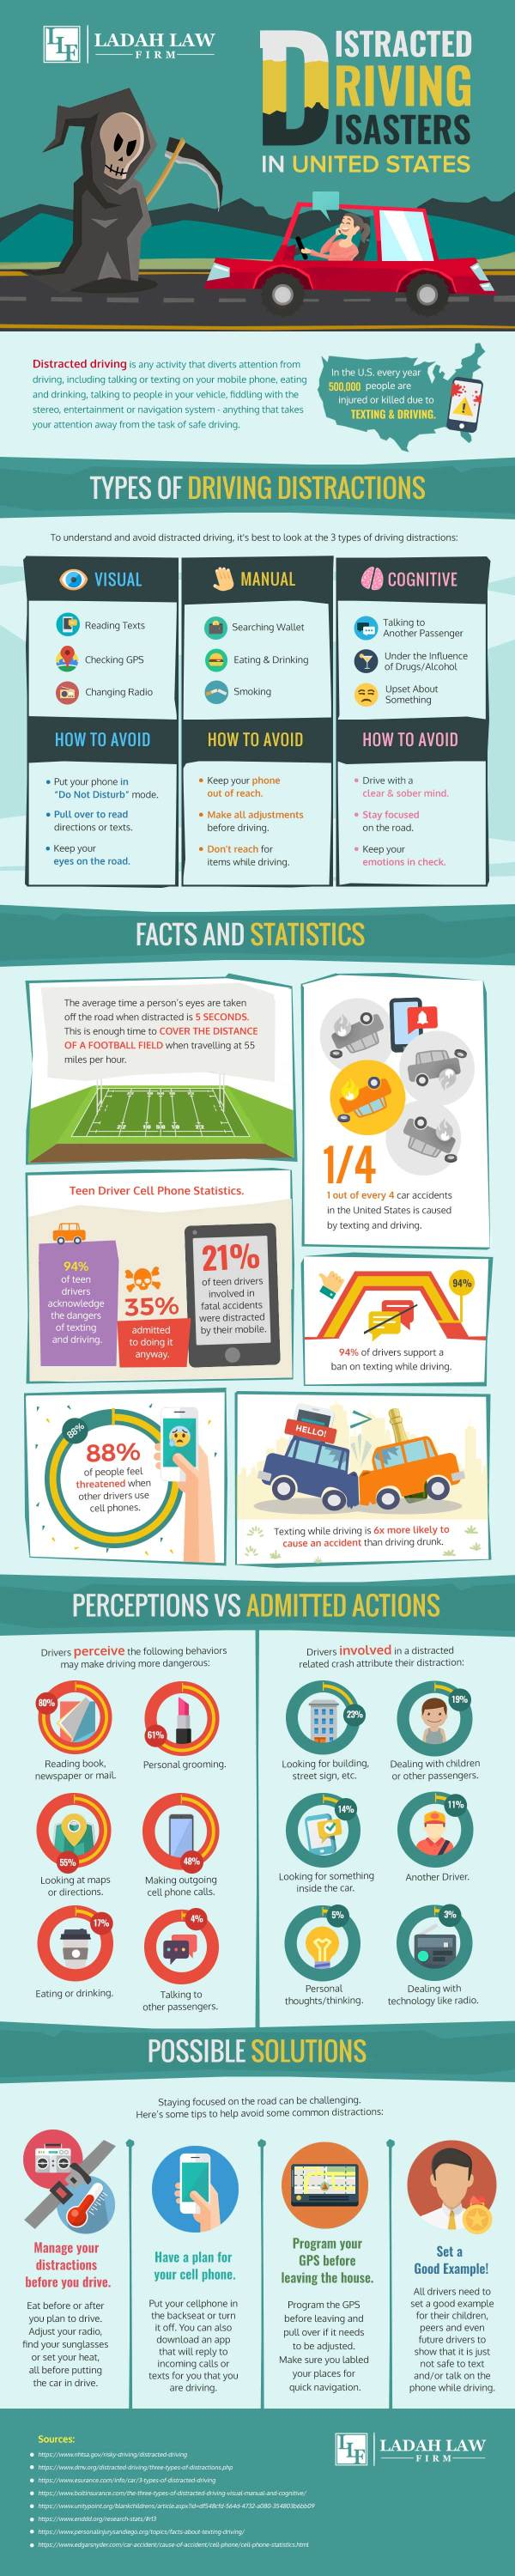 Distracted-Driving-Disasters-in-the-US-infographic